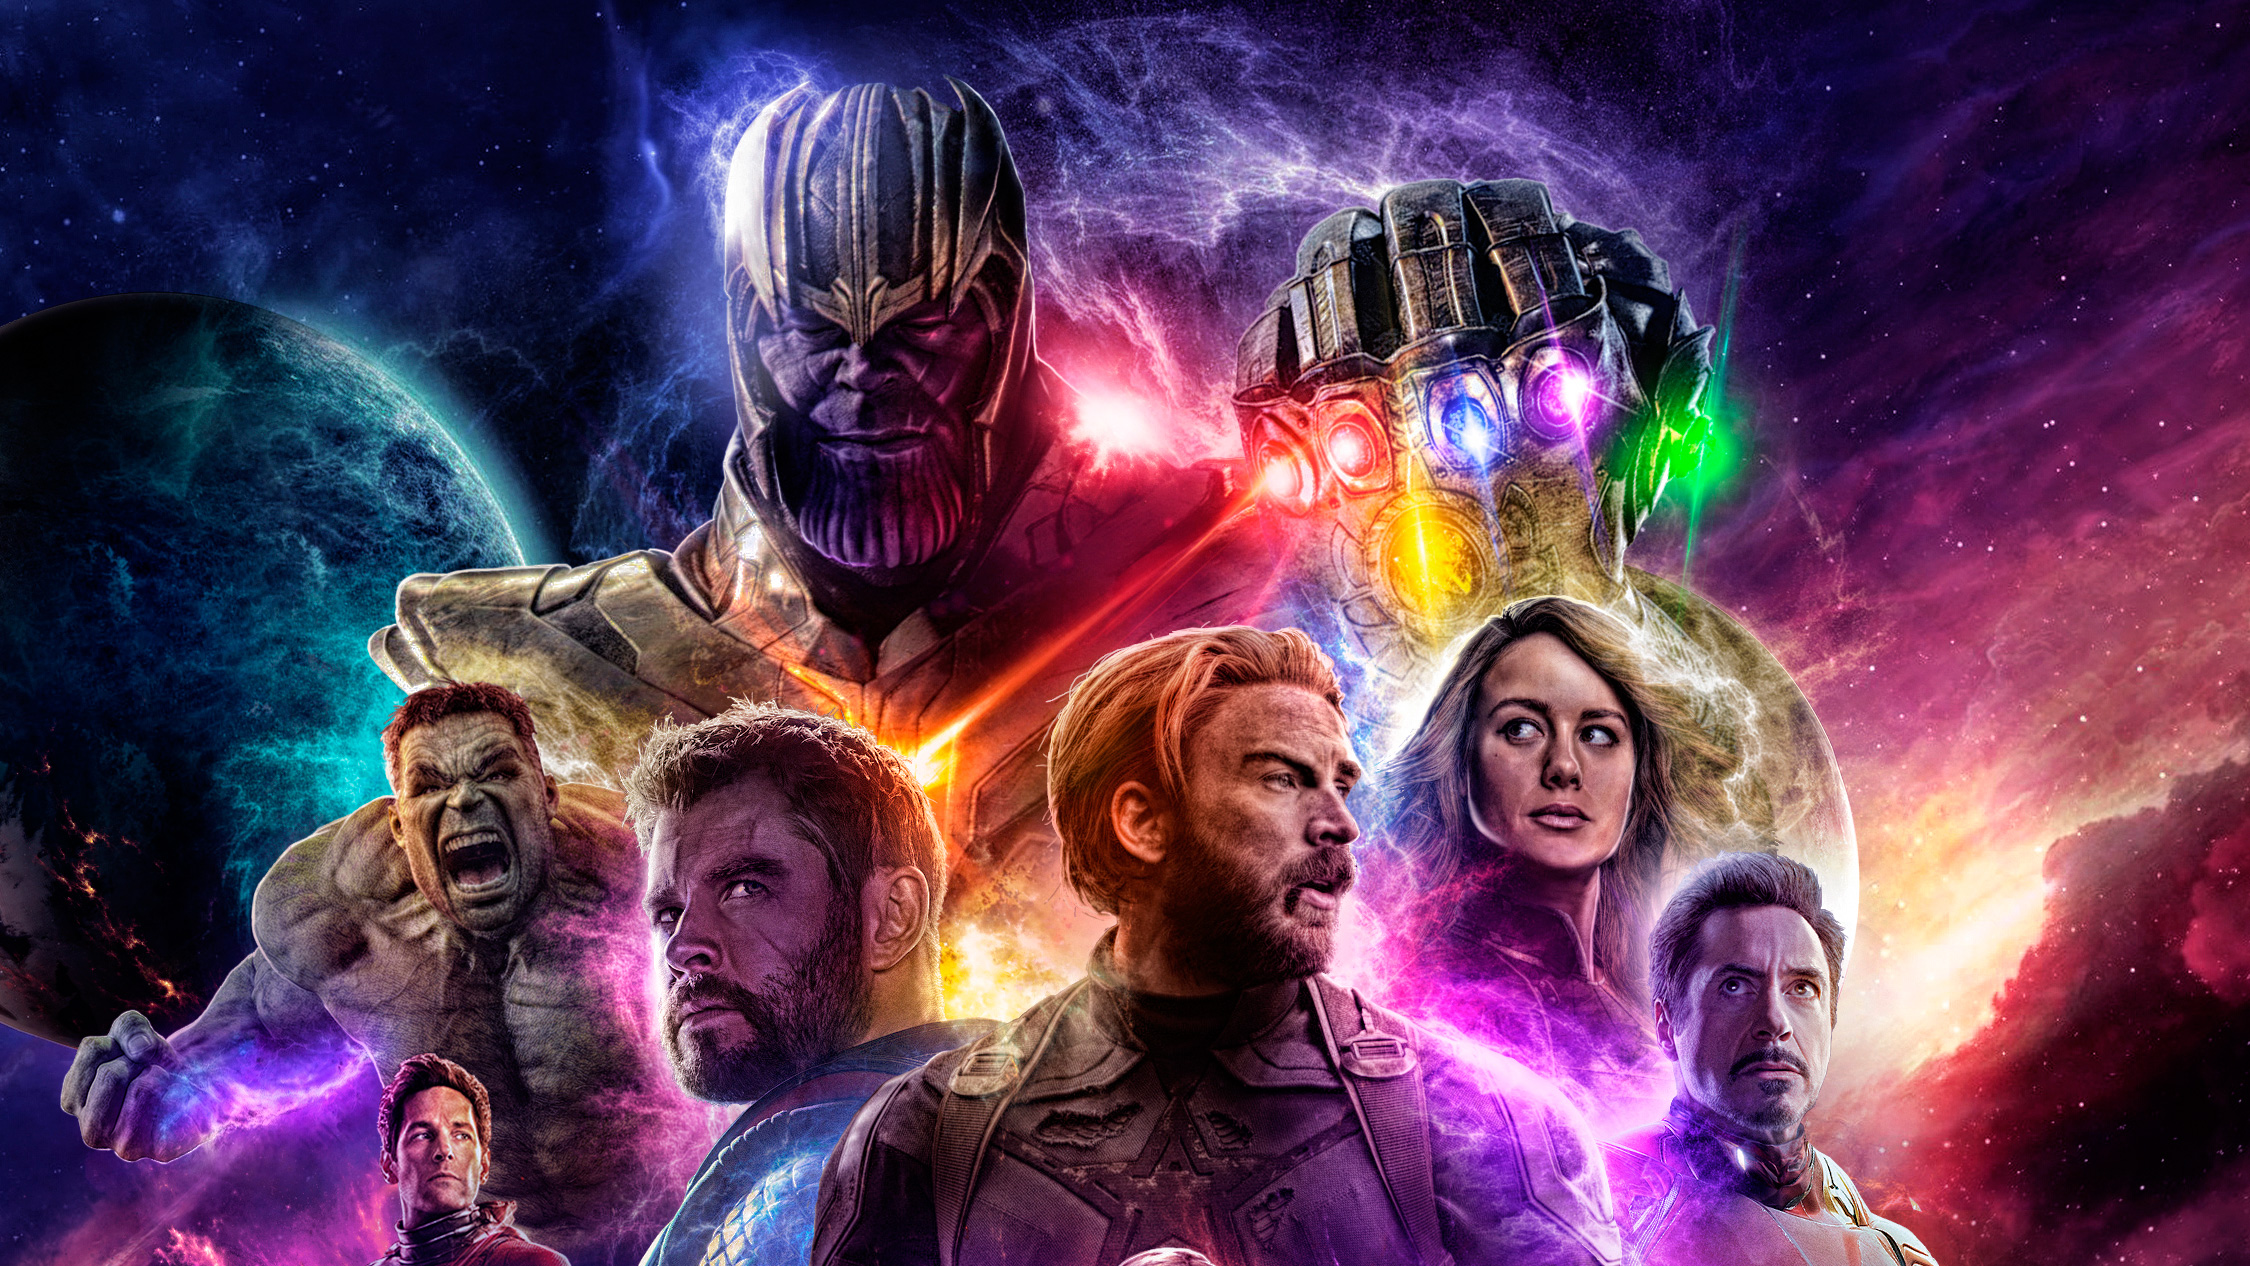 Avengers Endgame Wallpapers Top Free Avengers Endgame Backgrounds Wallpaperaccess